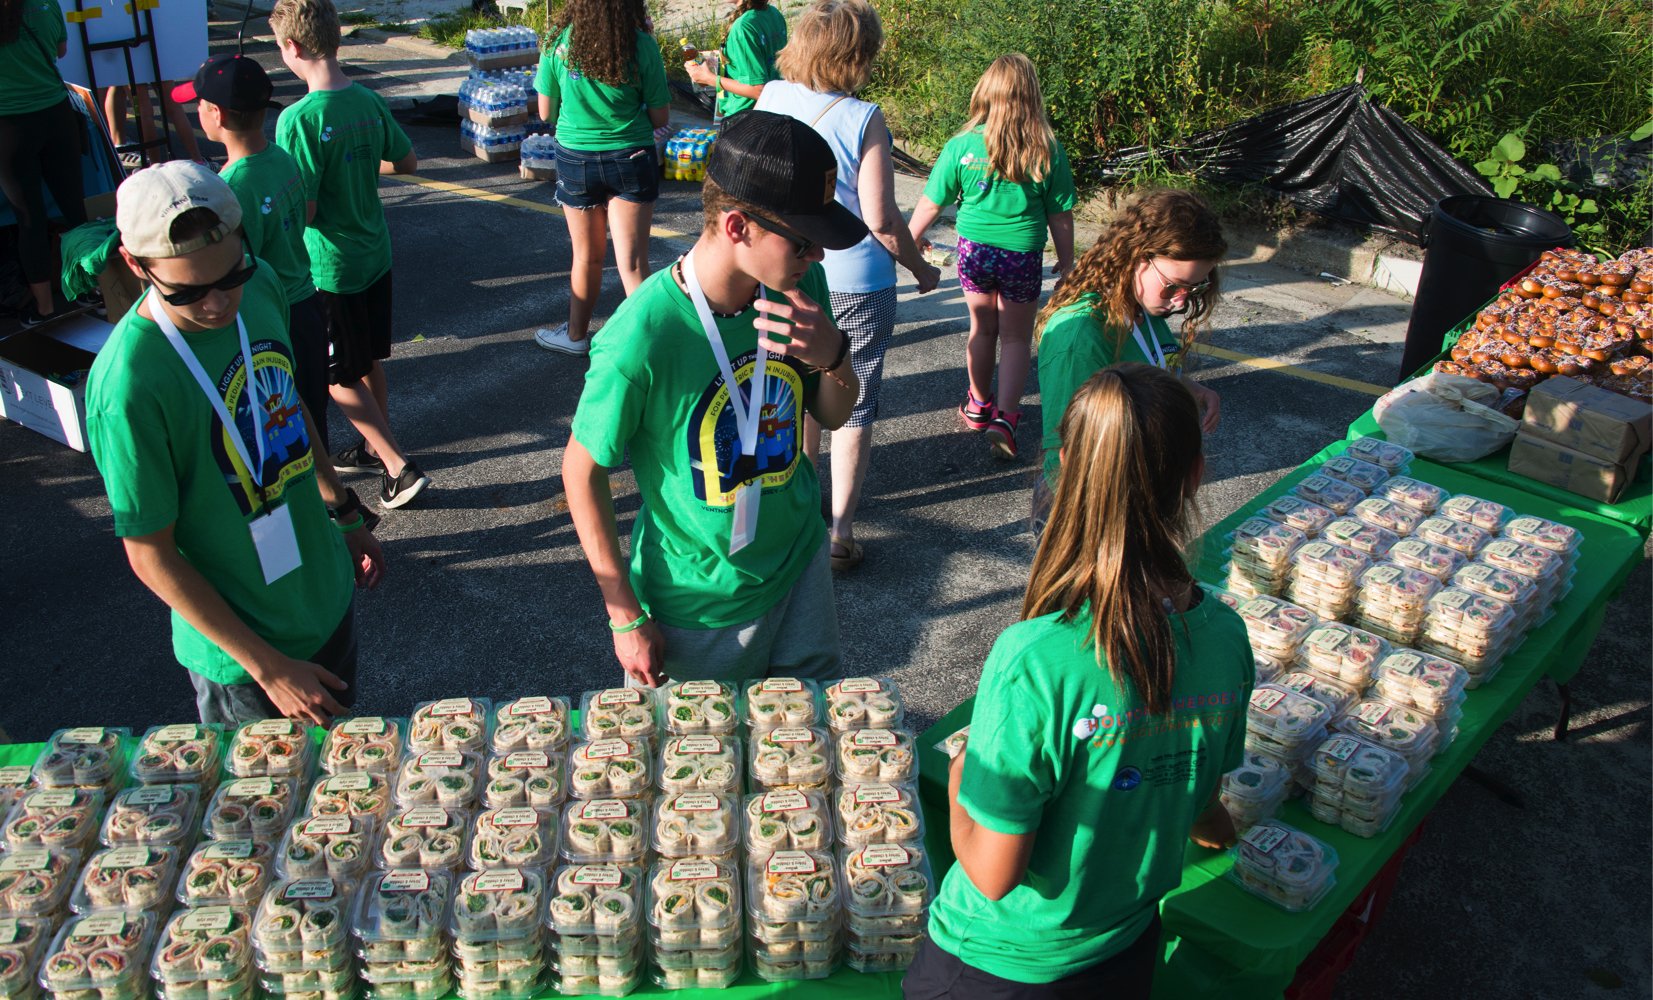 Some of our volunteers setting up all the sandwiches, pretzels, and drinks Wawa donated.